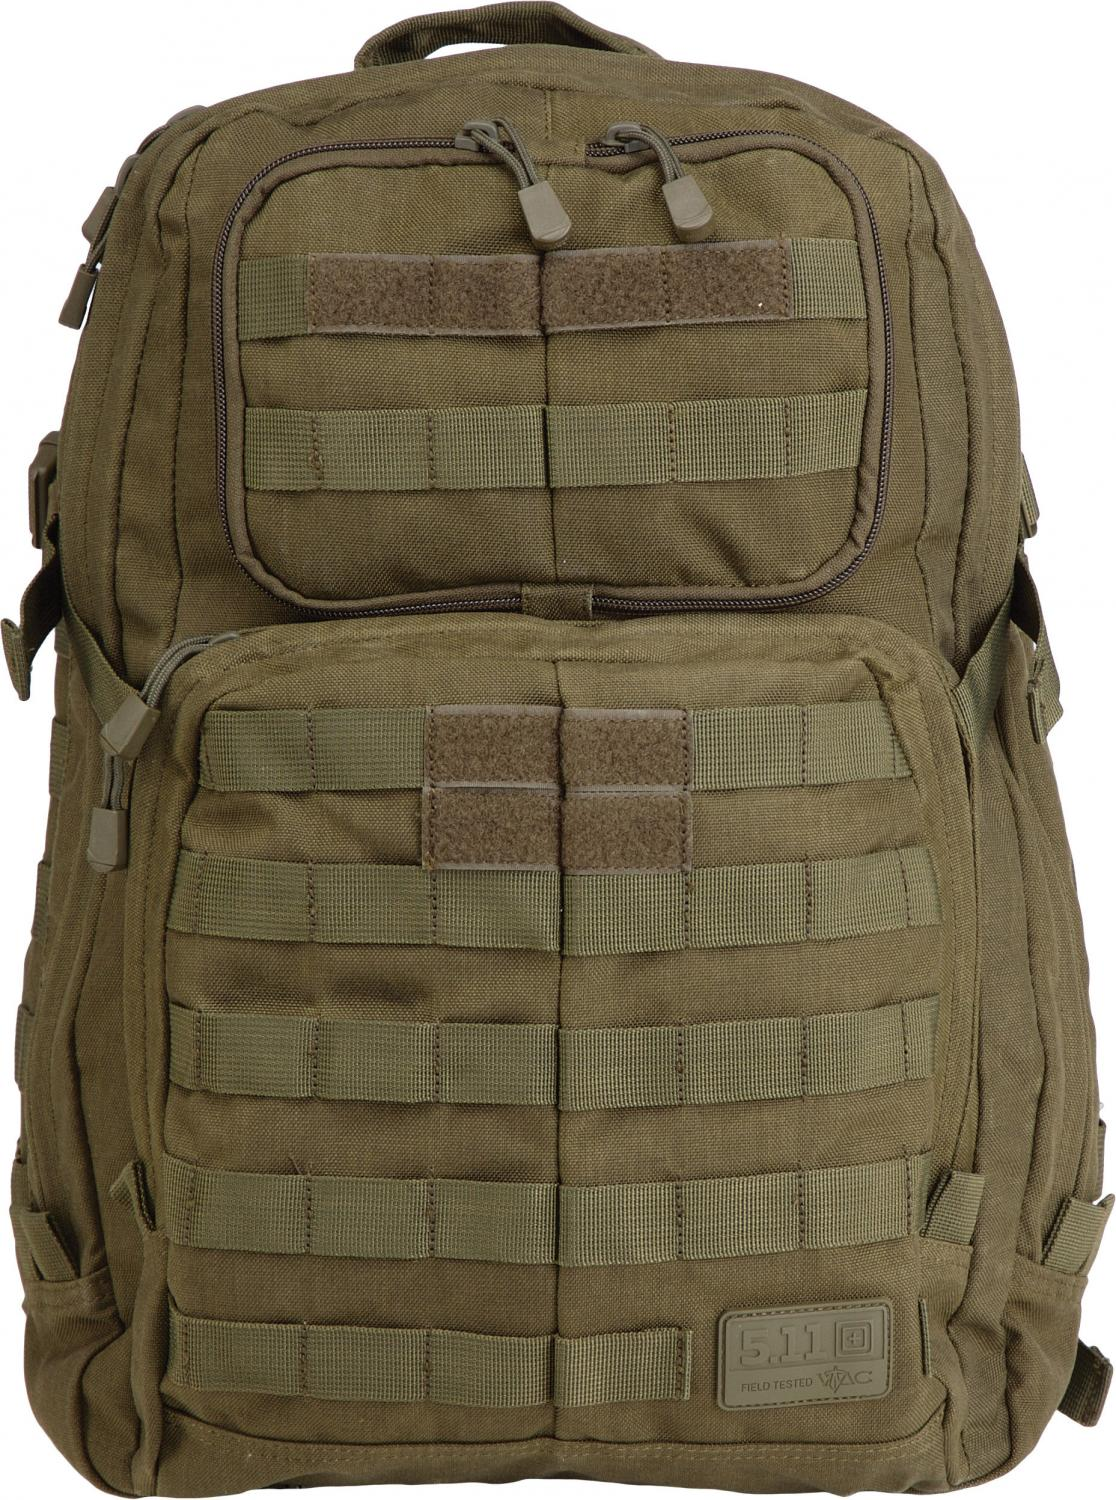 5.11 Tactical RUSH 24 Backpack, Tac OD (58601-188)